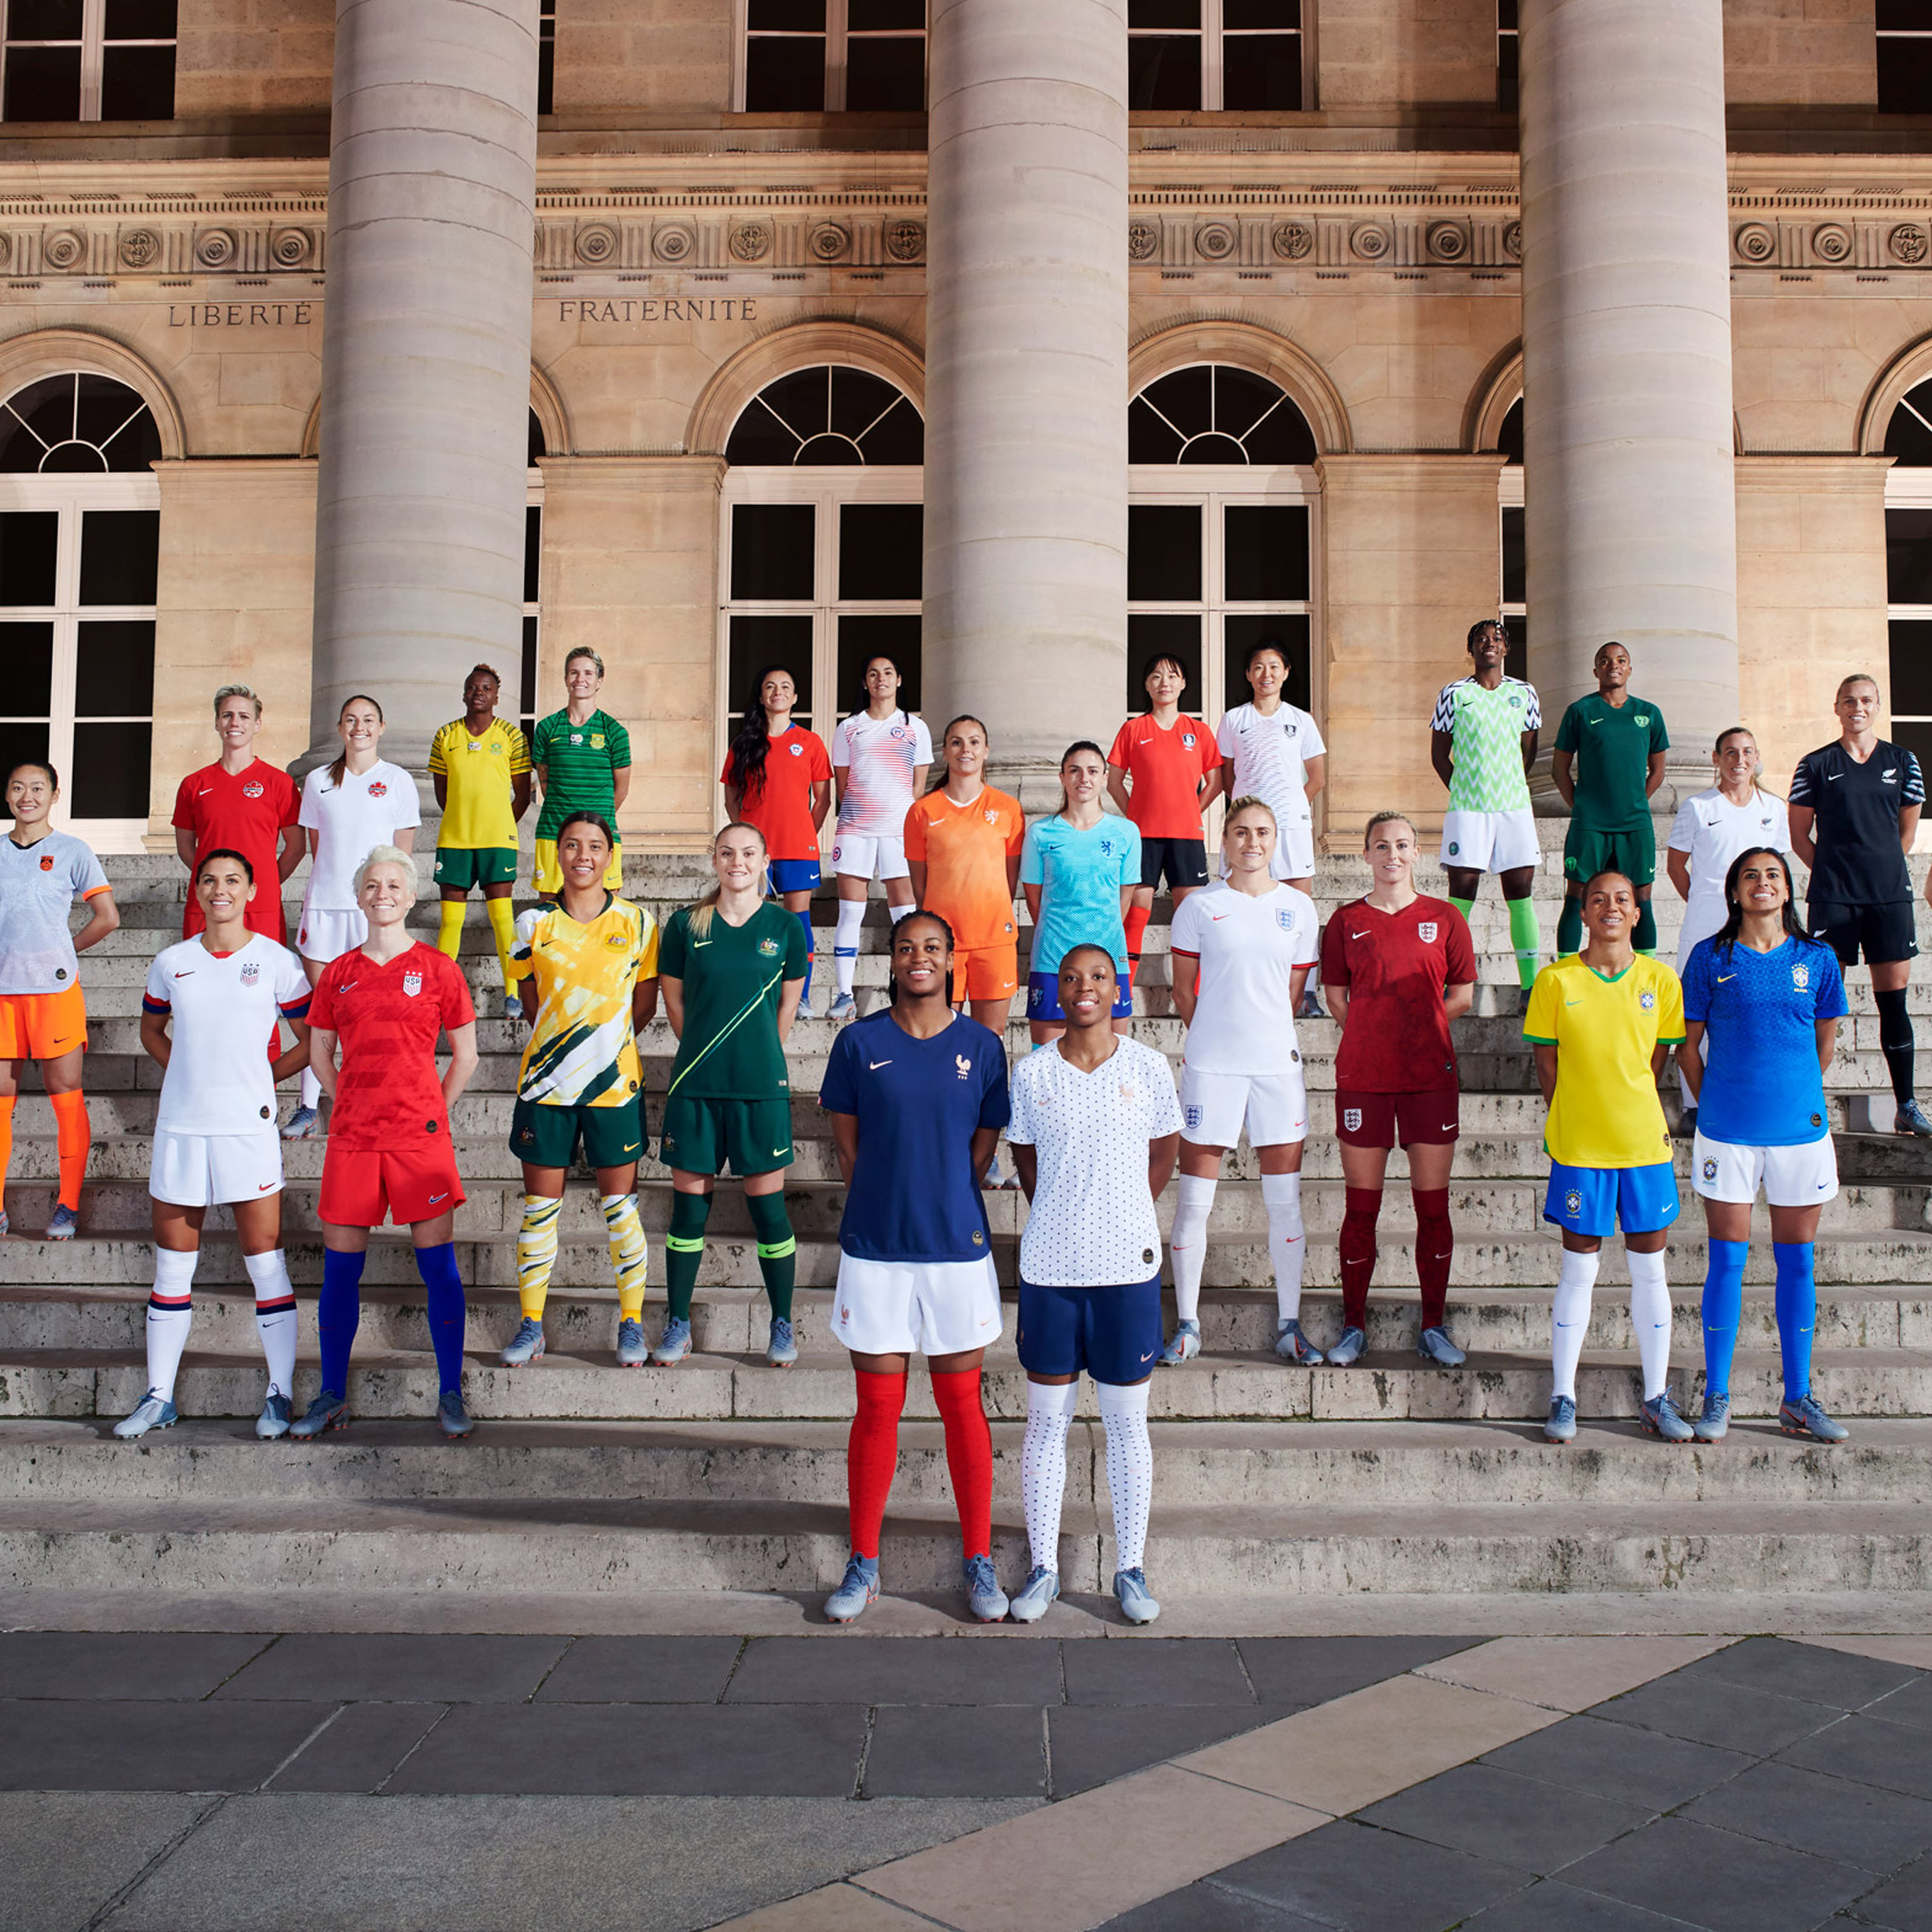 los angeles 9f17b a4aed Nike unveils Women's World Cup 2019 kits